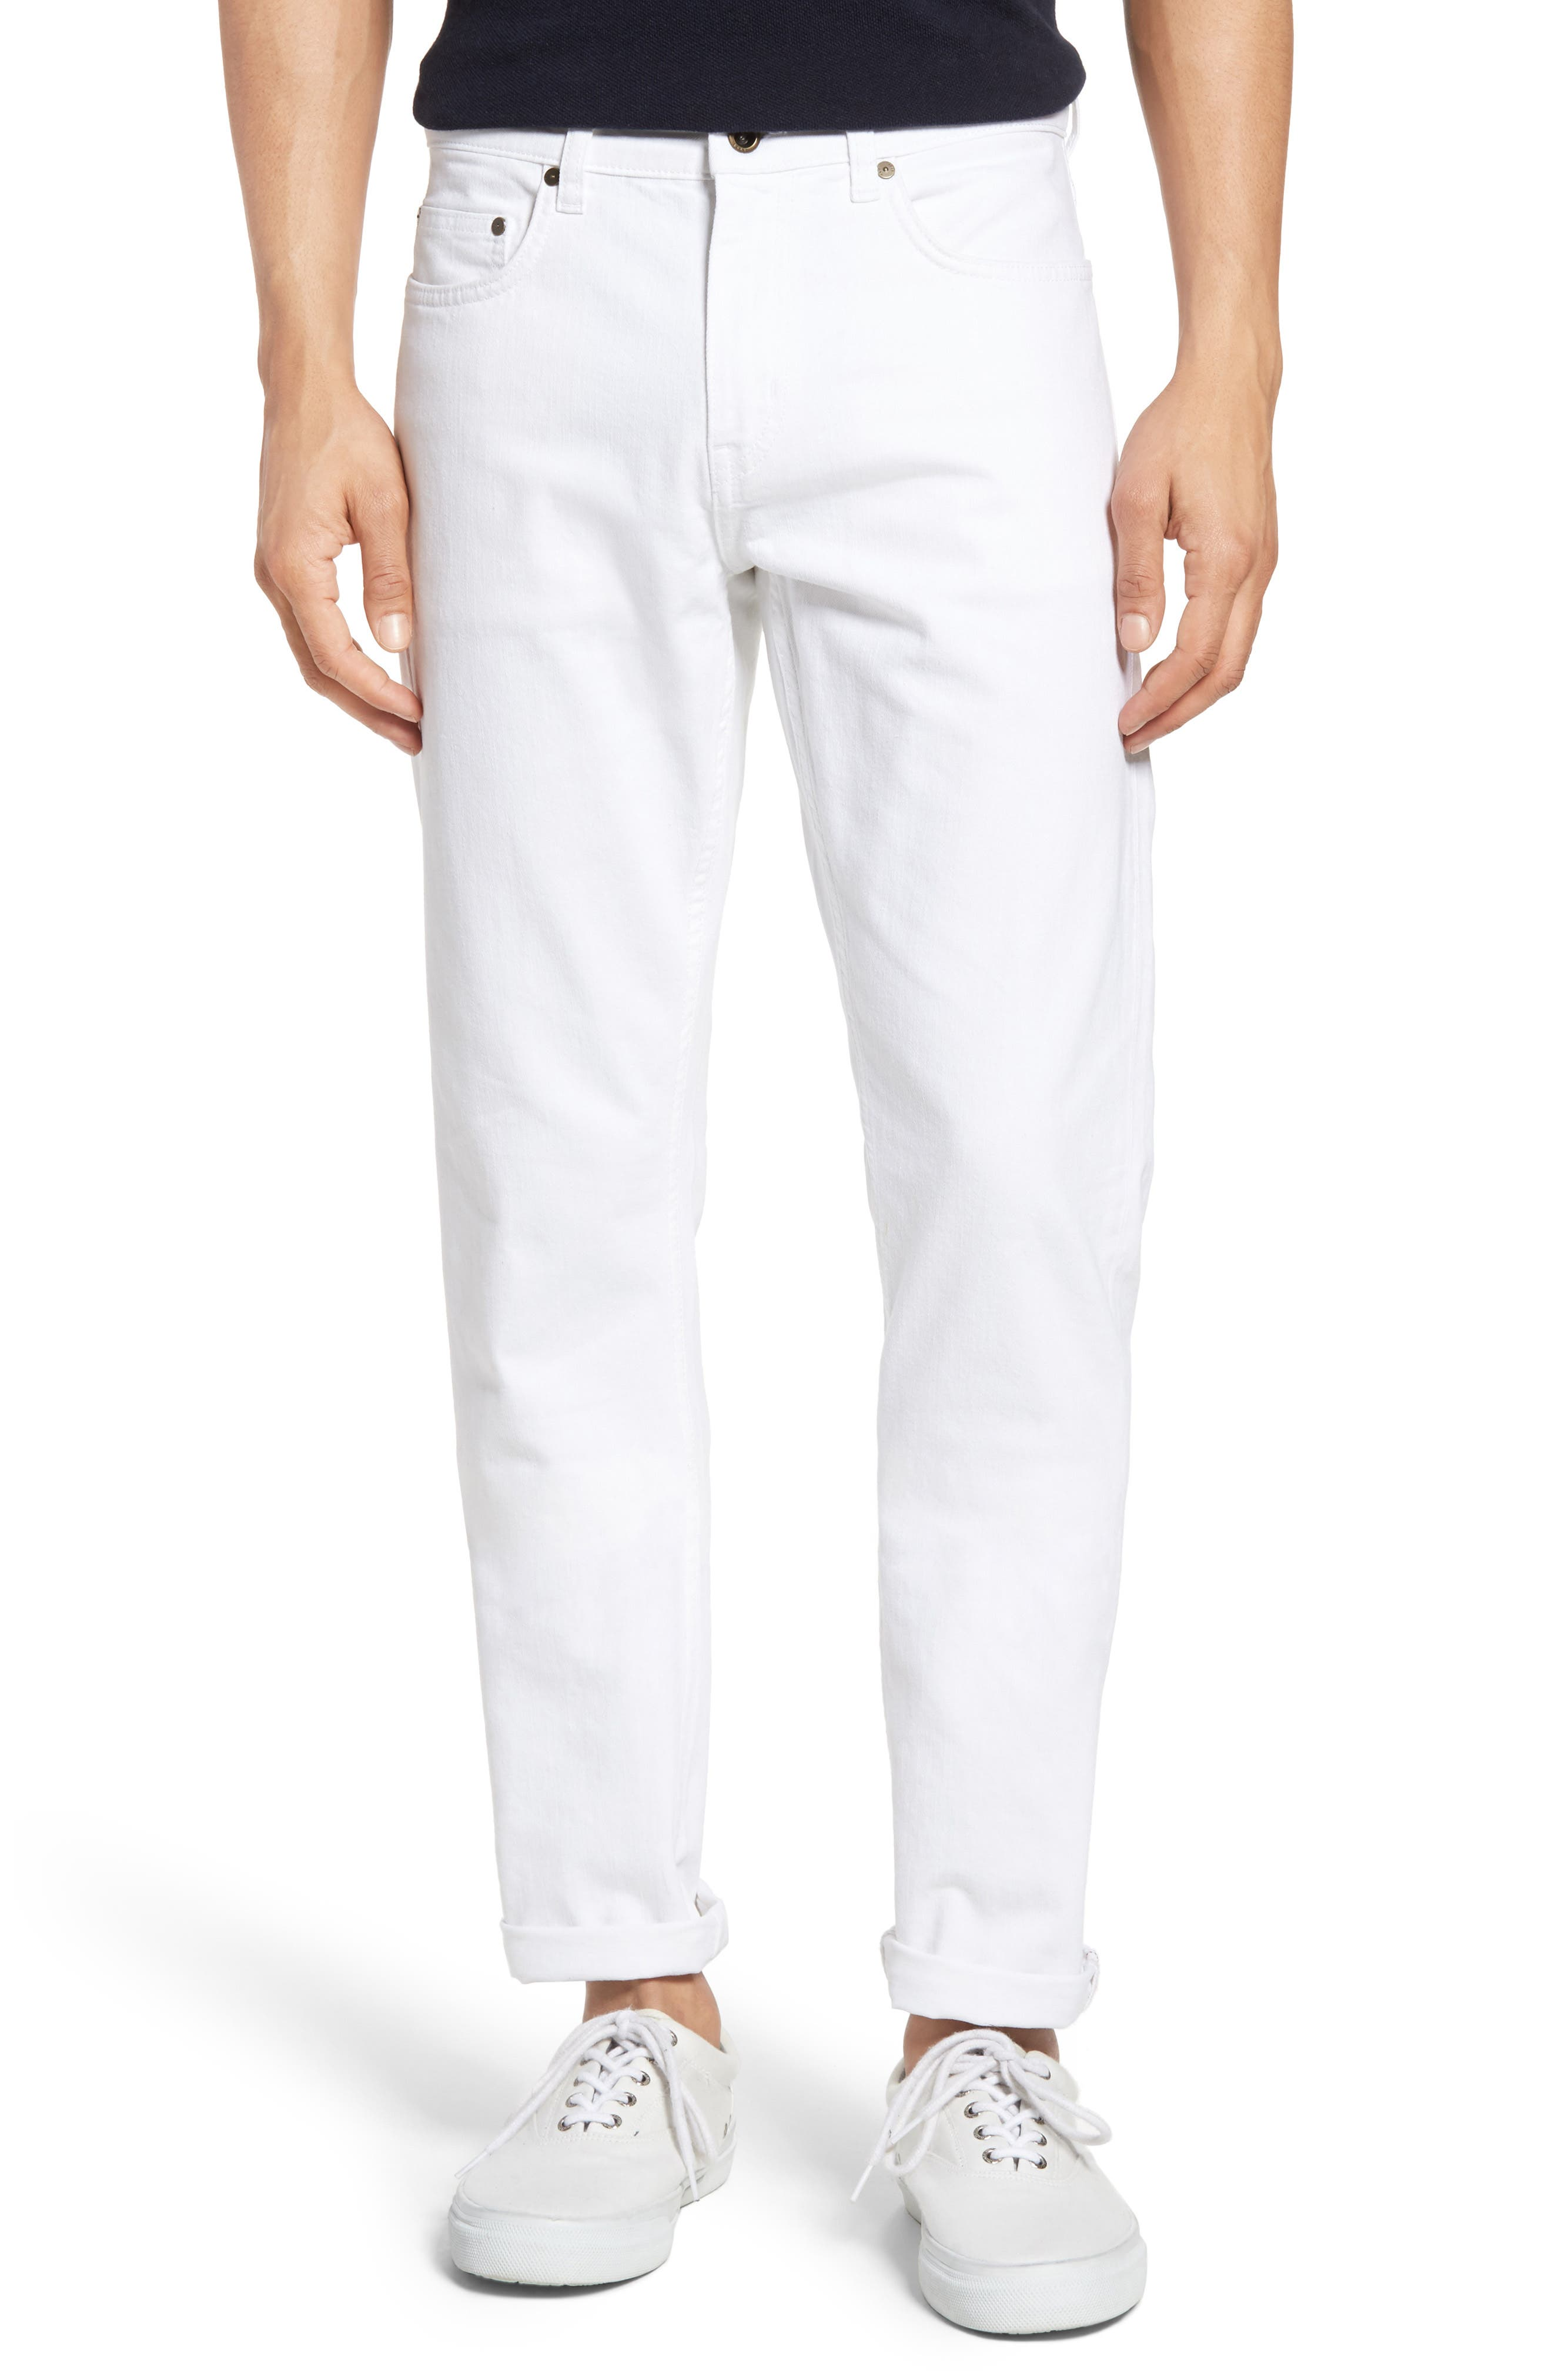 Allemand Straight Leg Jeans,                         Main,                         color, 111